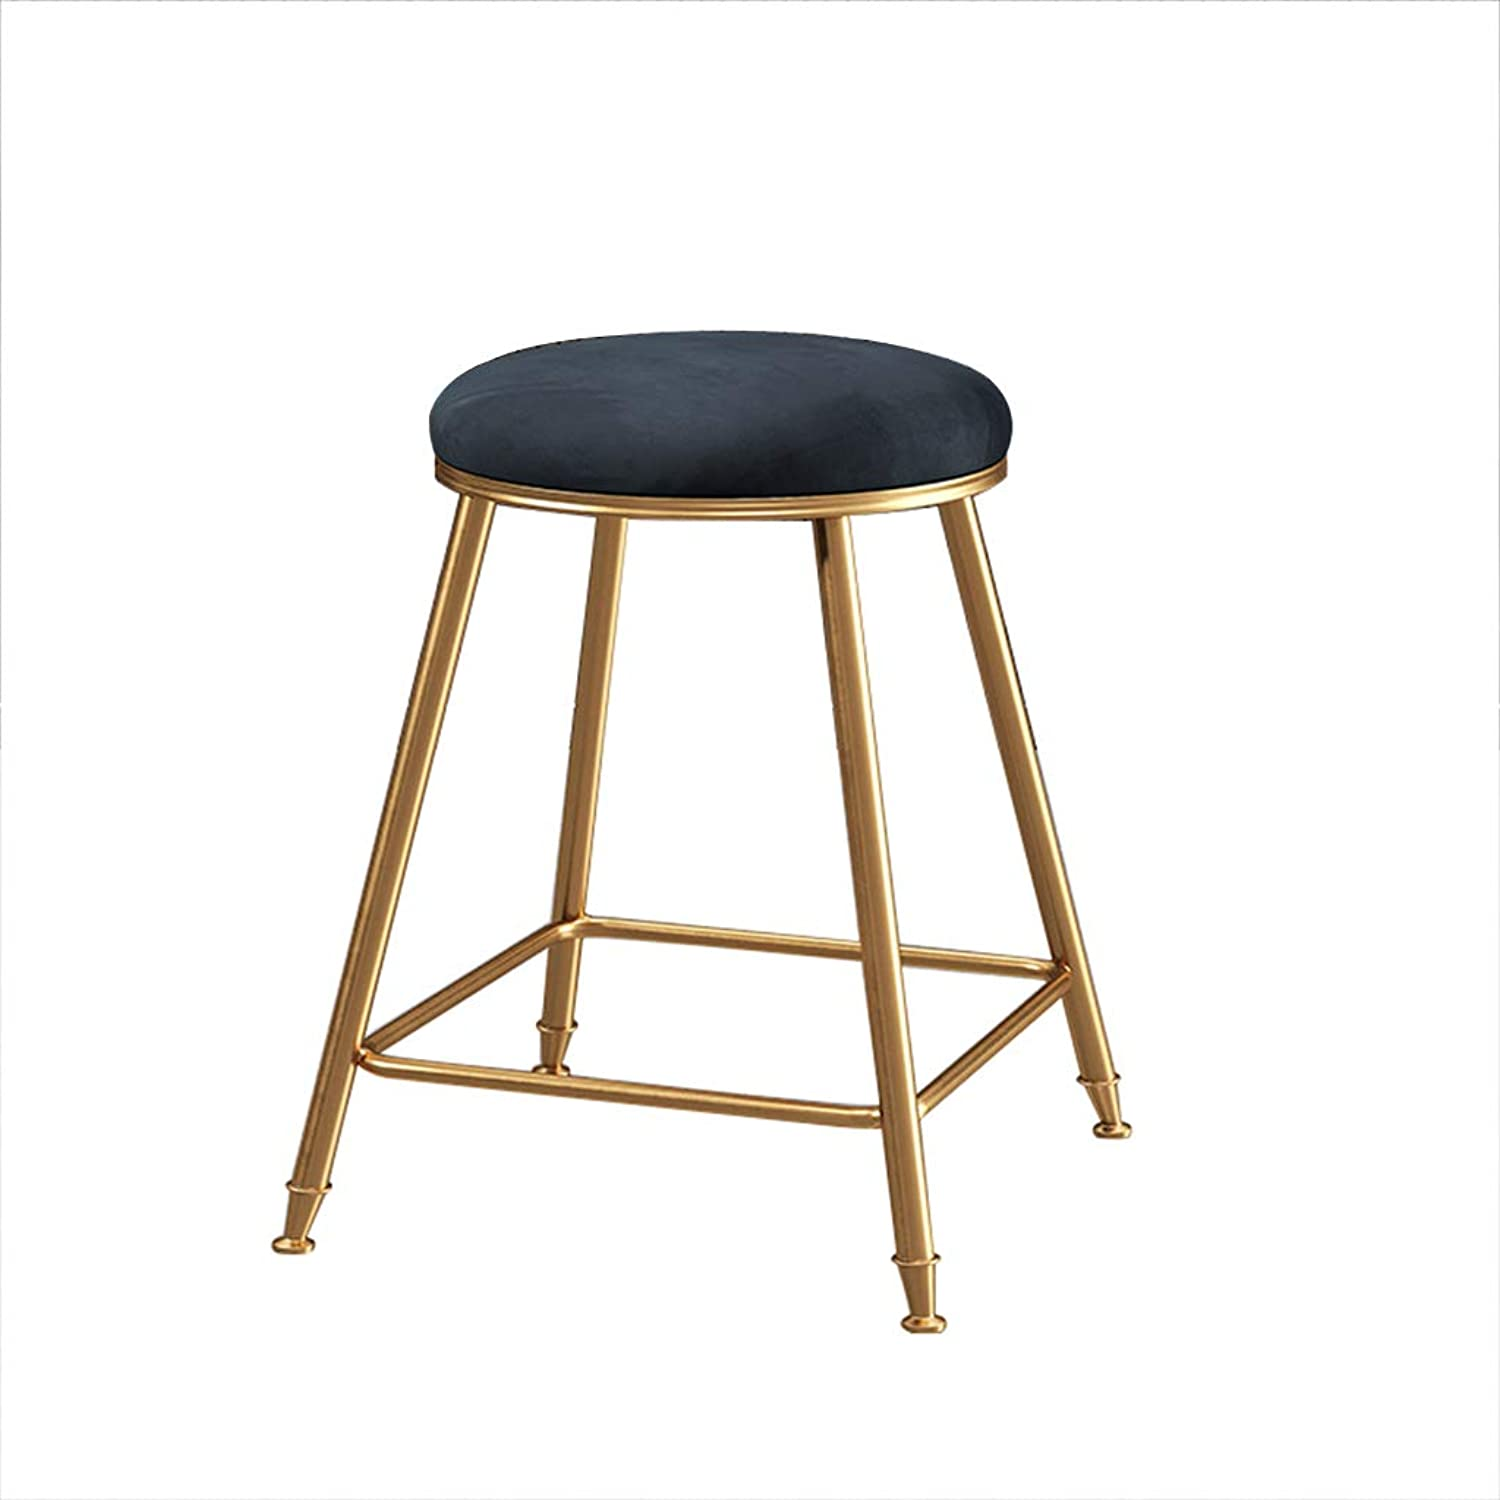 Nordic Bar Chair Iron Art Backrest High Stool Simple Fashion Dining Chair with Footrest Round for Pub Home Restaurant High 45 65 75cm (3 colors)